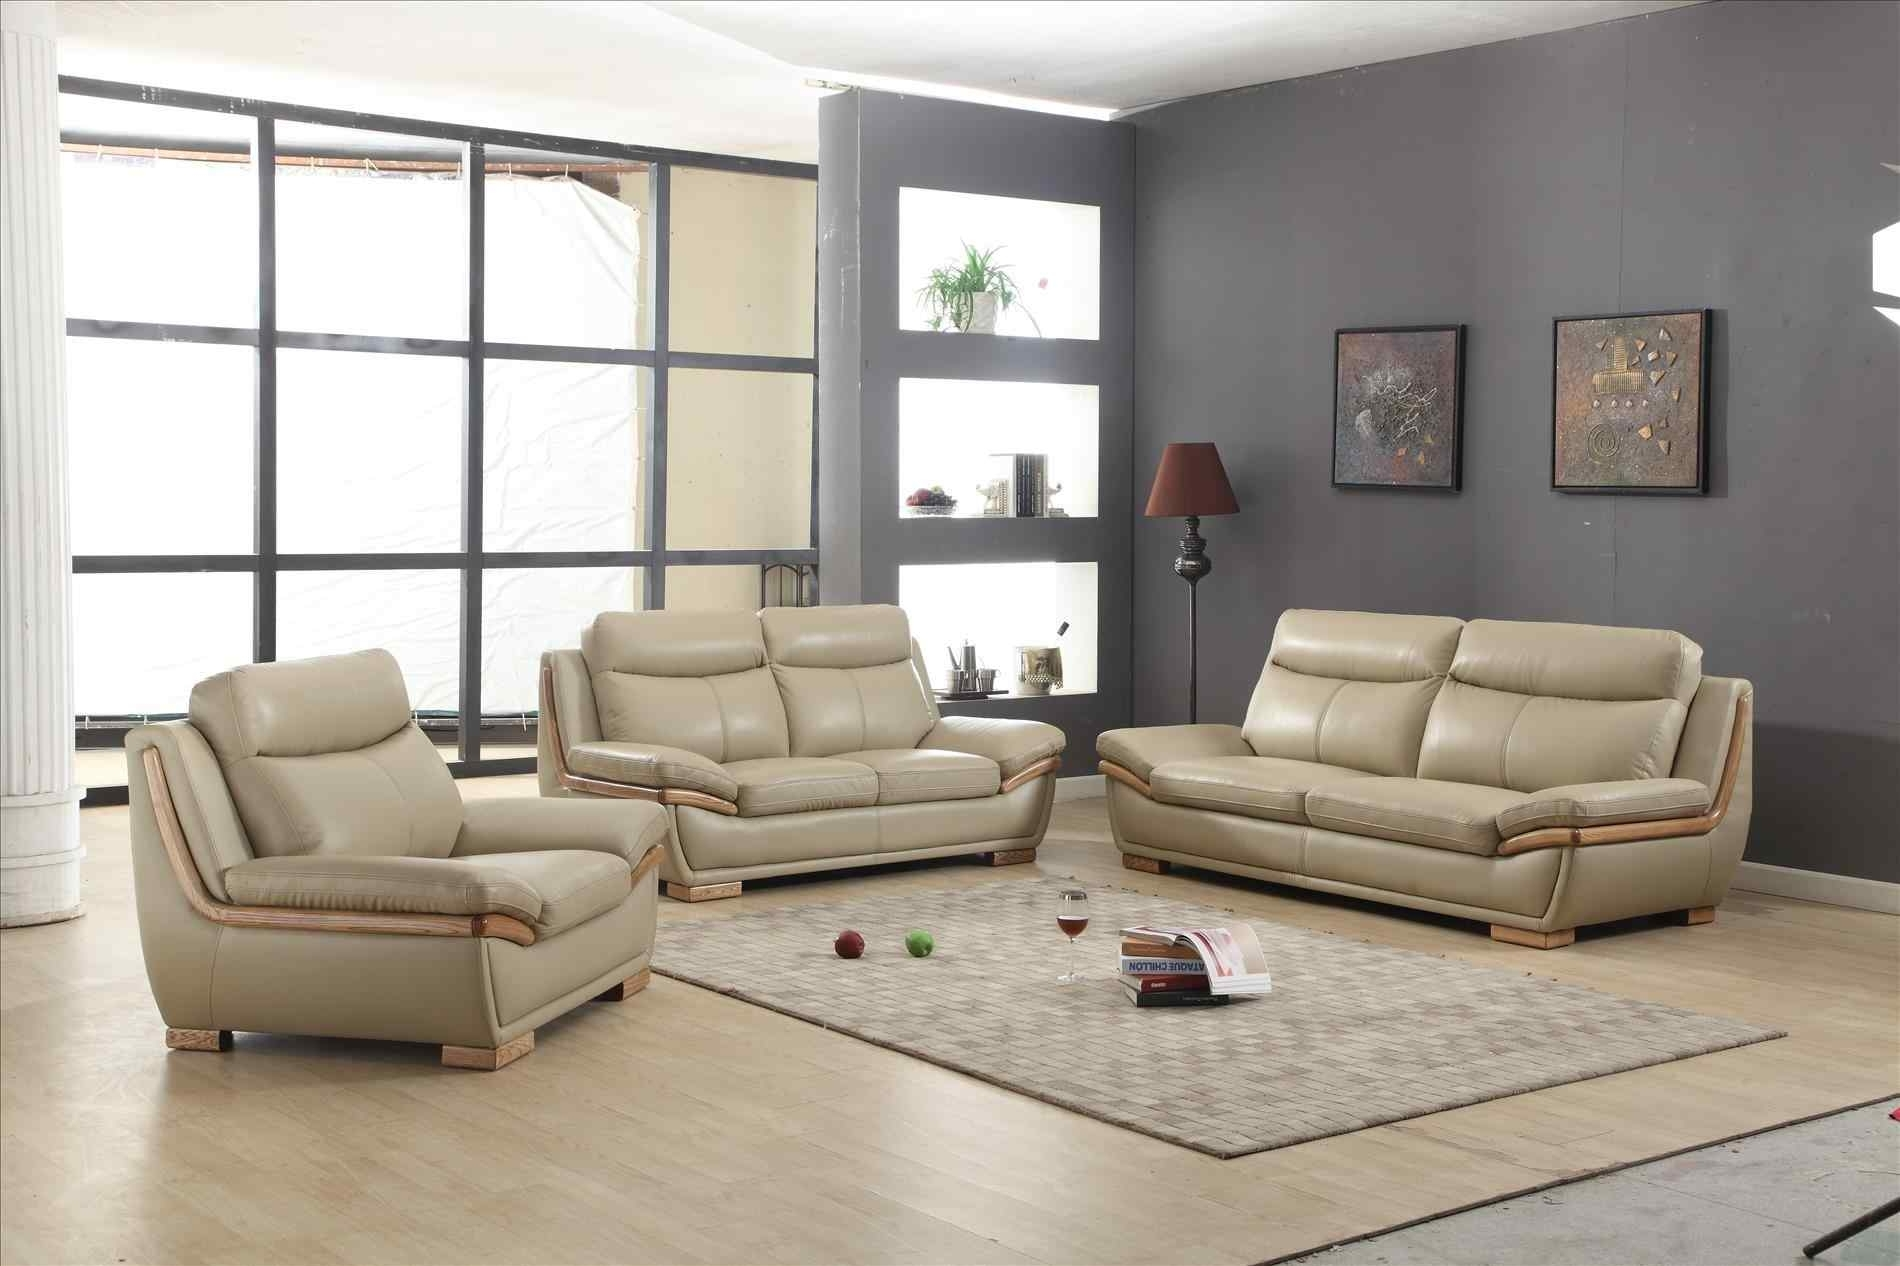 The Images Collection Of Couch Leather Modern Sectional Sofa Plus for San Francisco Sectional Sofas (Image 9 of 10)